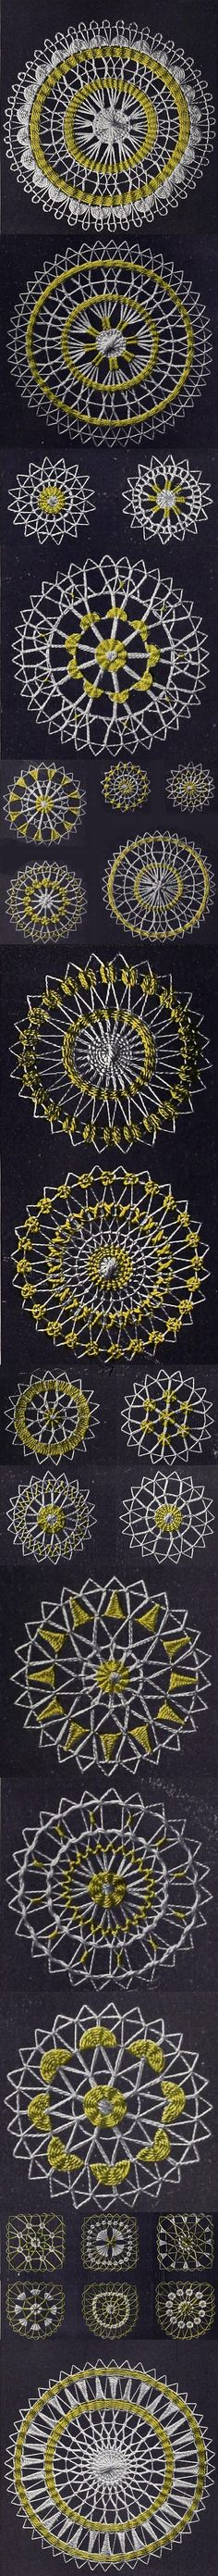 Teneriffe lace is a needle lace from the island of Tenerife. Teneriffe Lace Work from 1920 gives detailed how to instructions! Read it on DIY Collaboratorium's Crochet page.